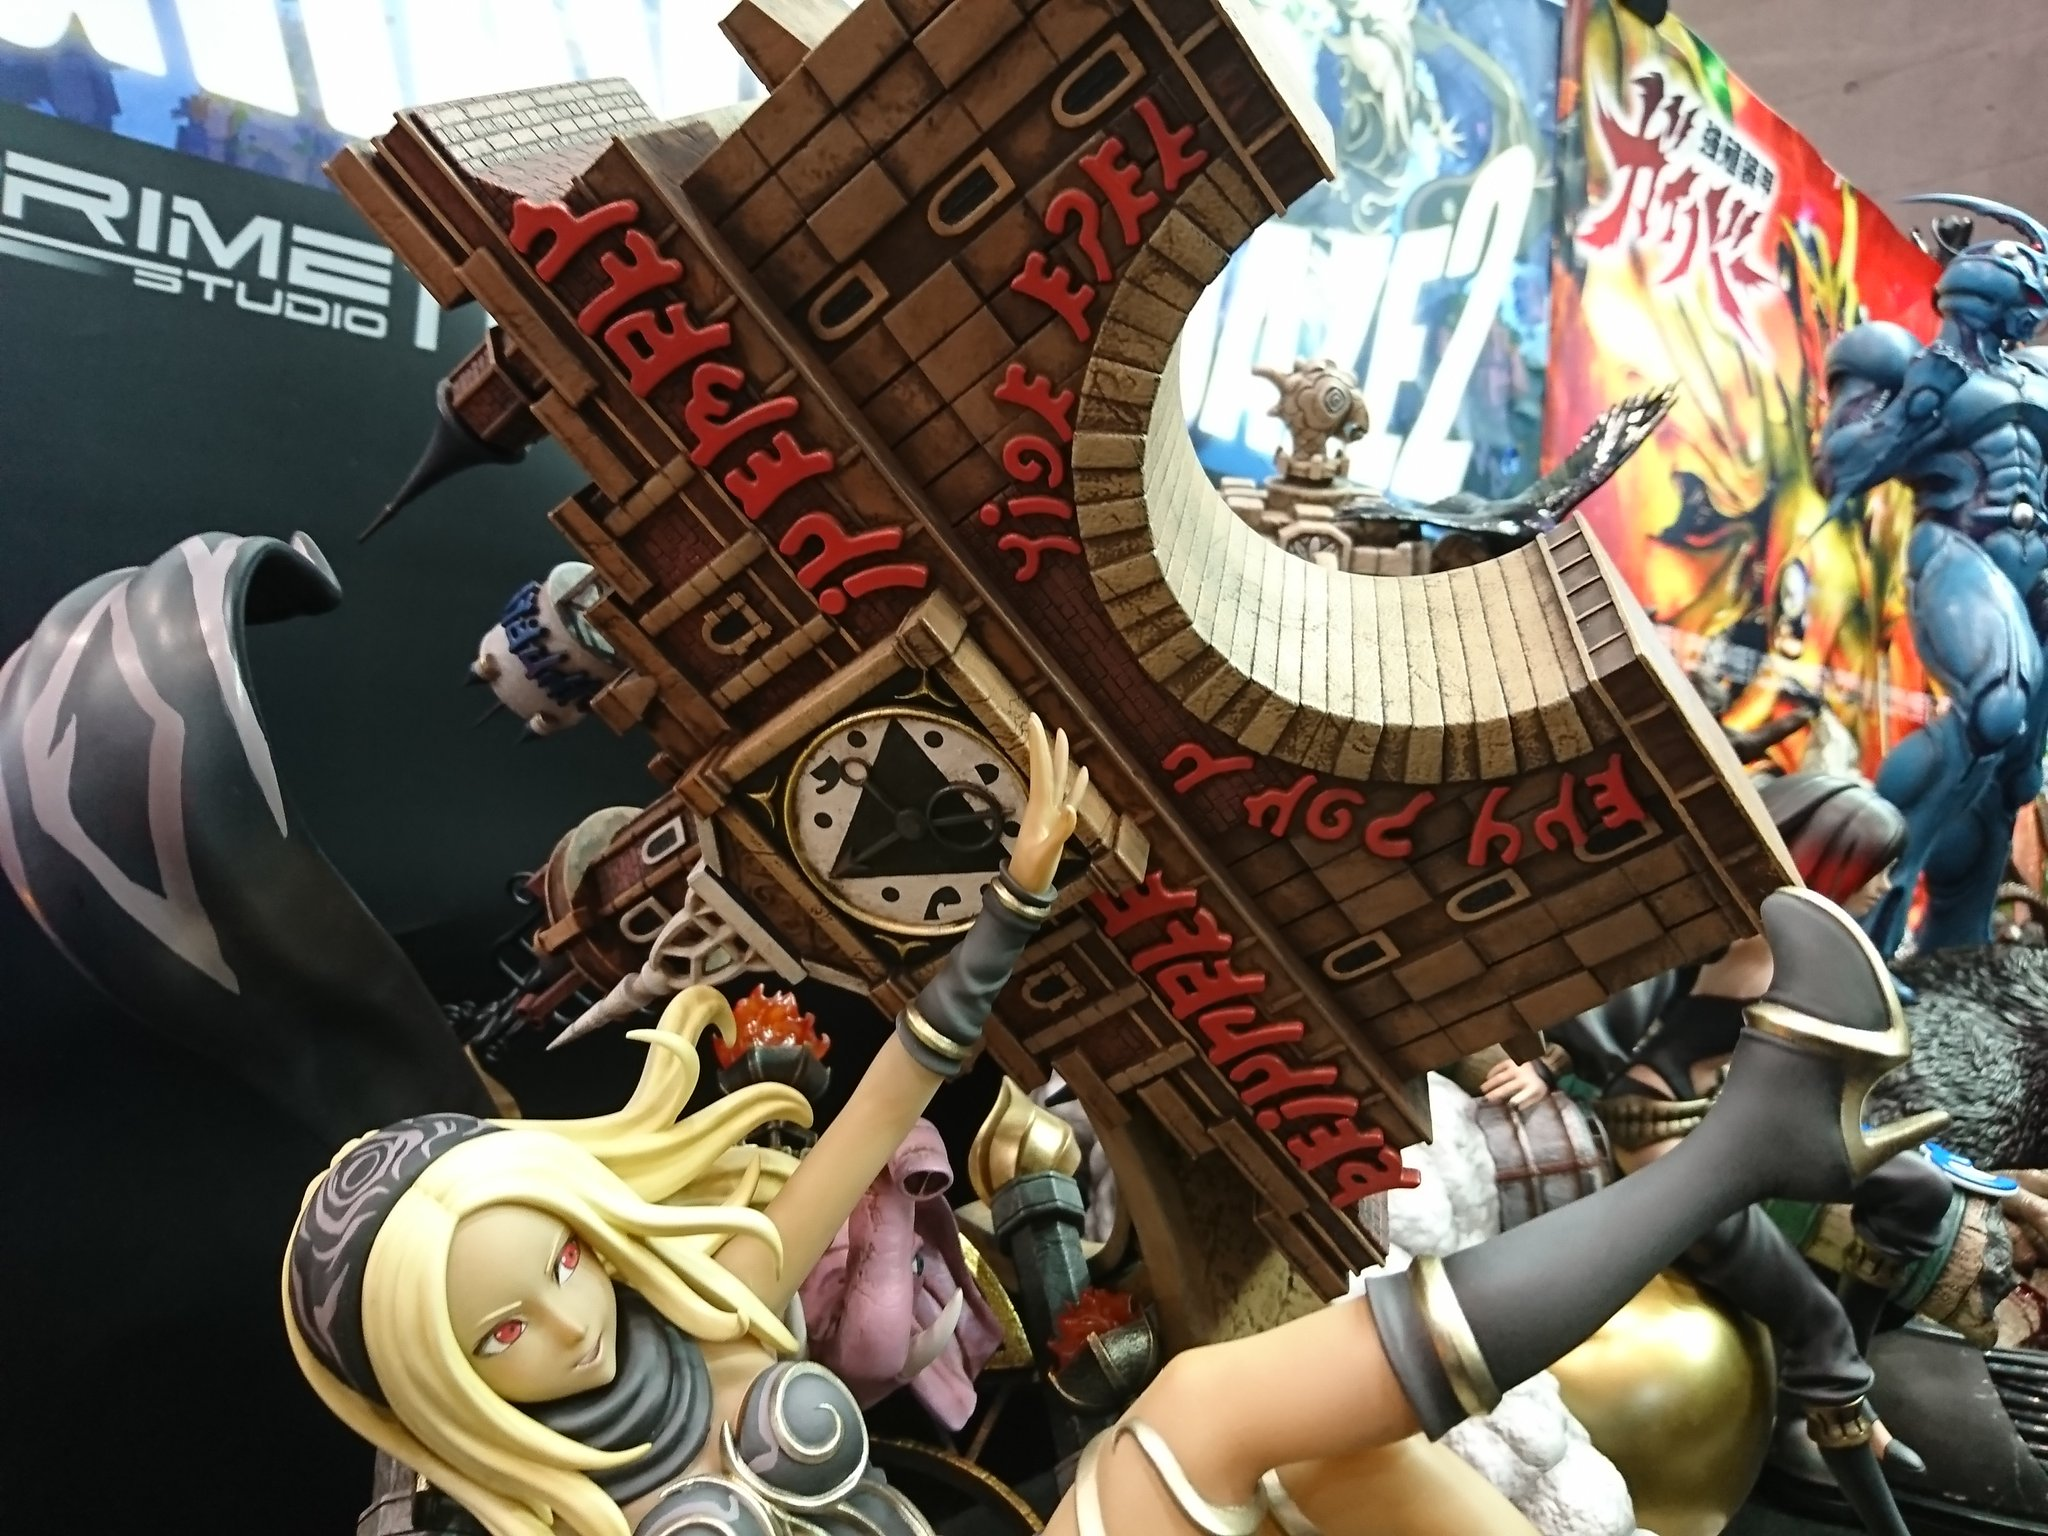 Gravity Rush Figures - Prime Studio 1 - 8